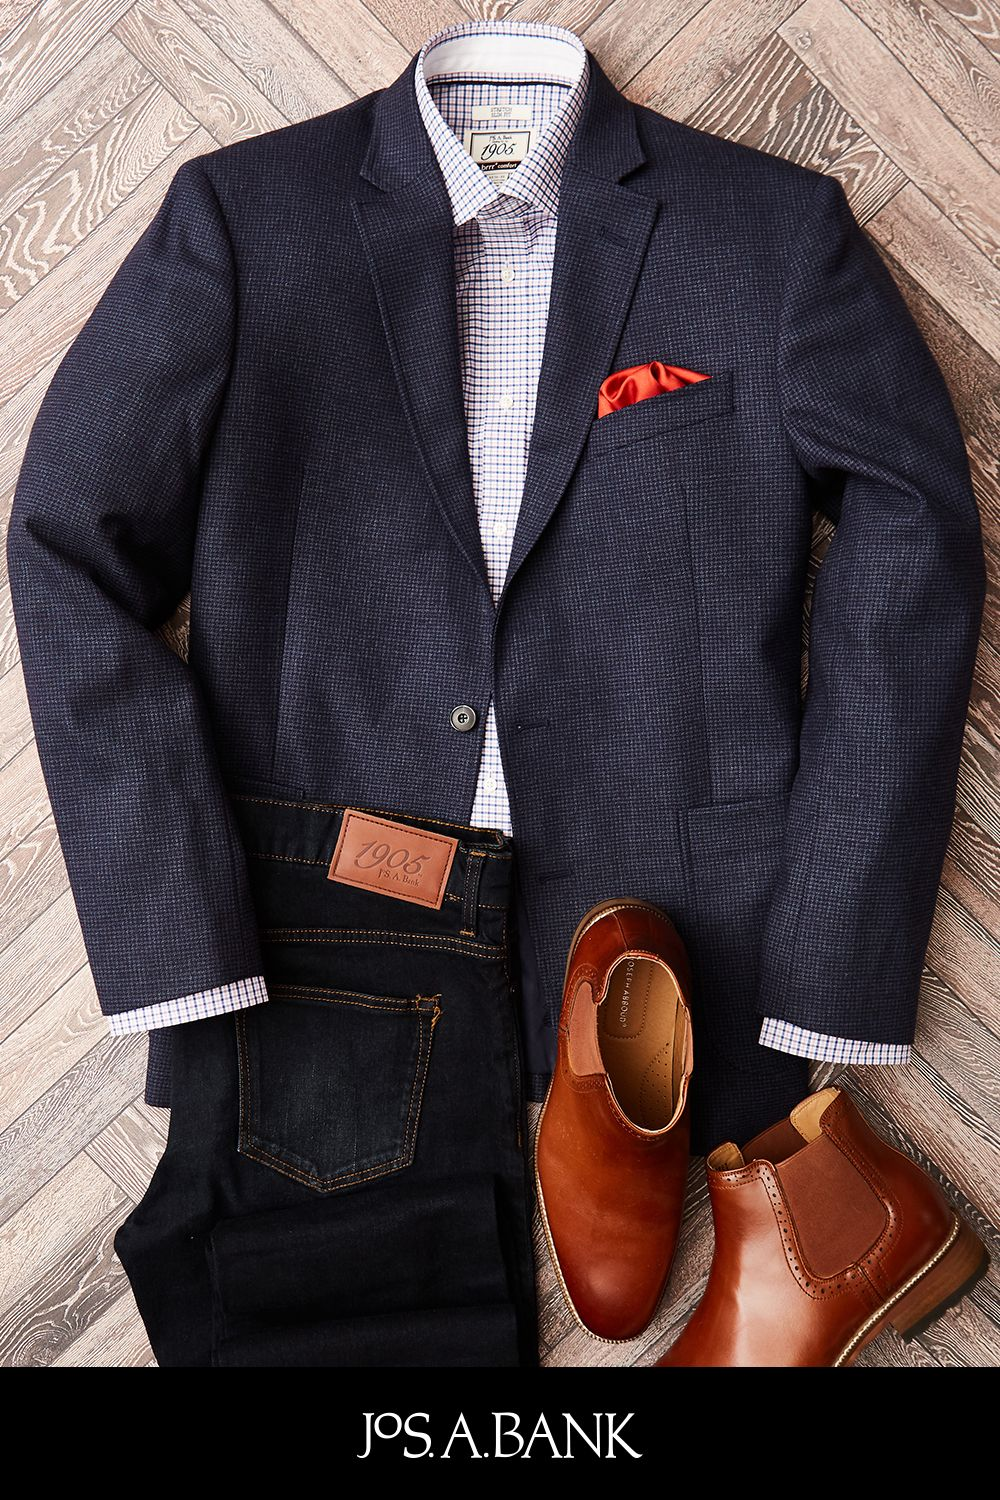 1f3afe3a0 Our favorite combo: 1905 sport coat, dark denim, and cognac Chelsea boots.  Get the look at #JosABank.